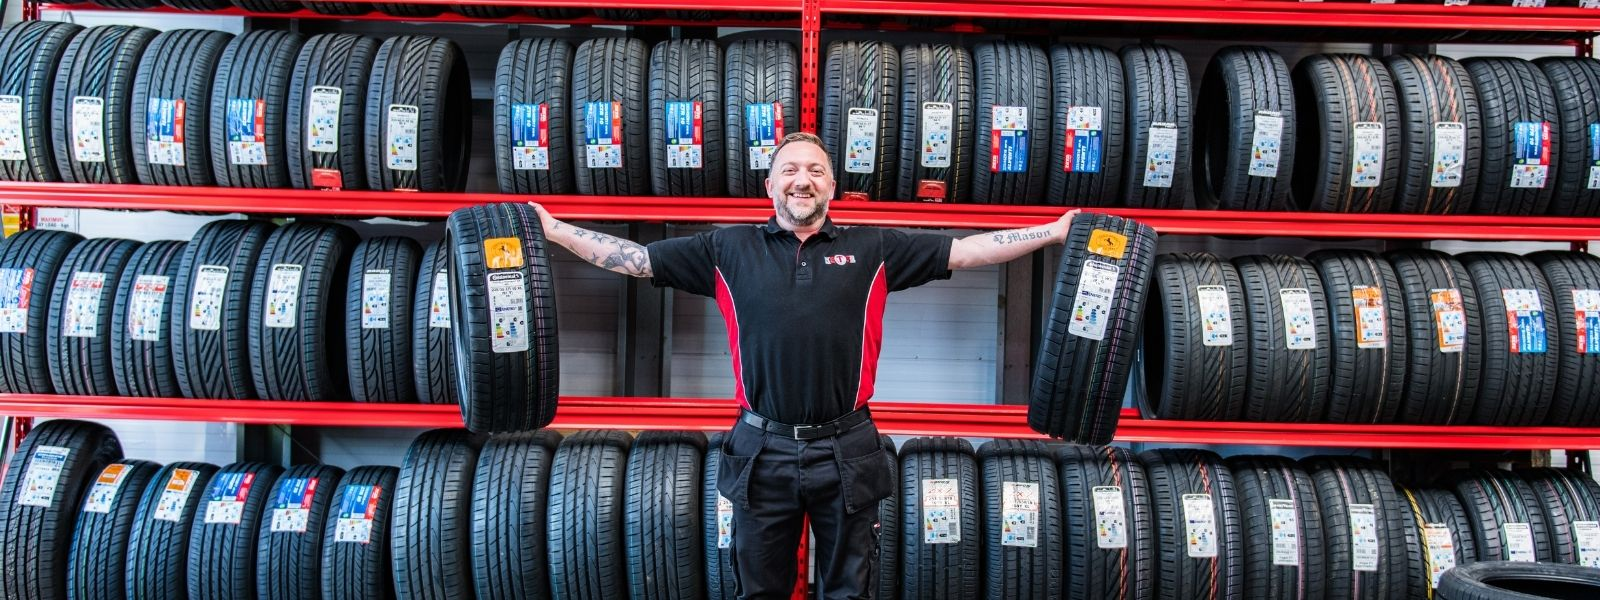 Tyre fitter standing in front of tyre racking